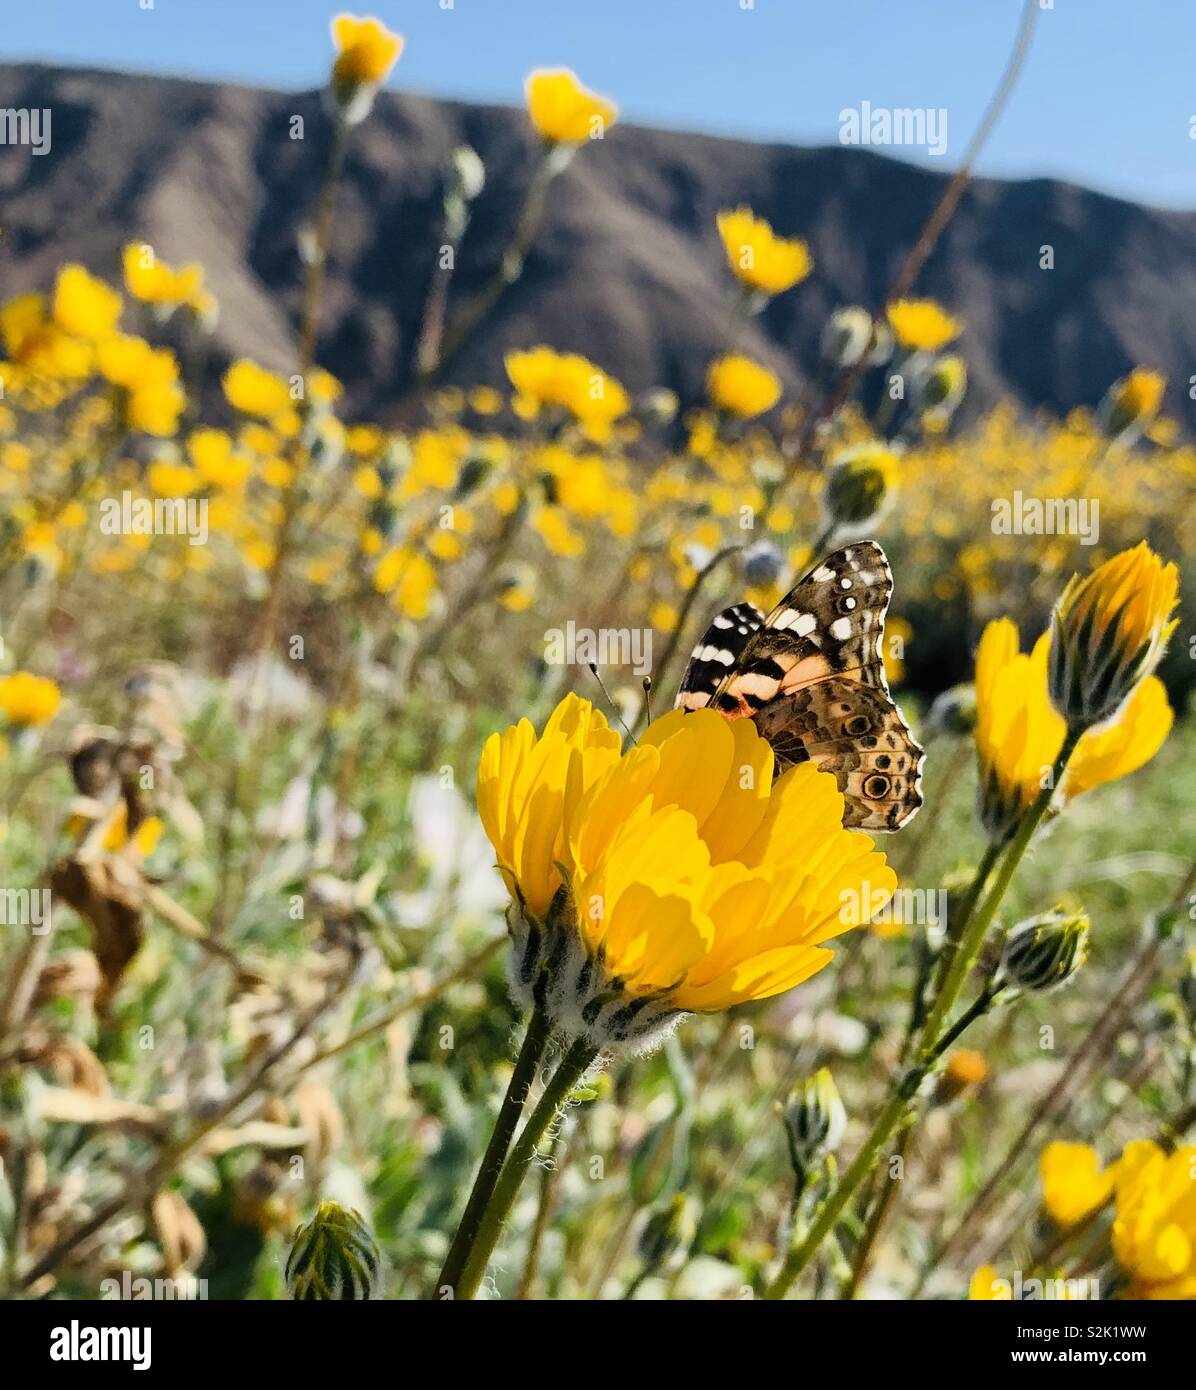 A Painted Lady butterfly rests on a yellow flower during the superbloom in the desert of California.sm - Stock Image